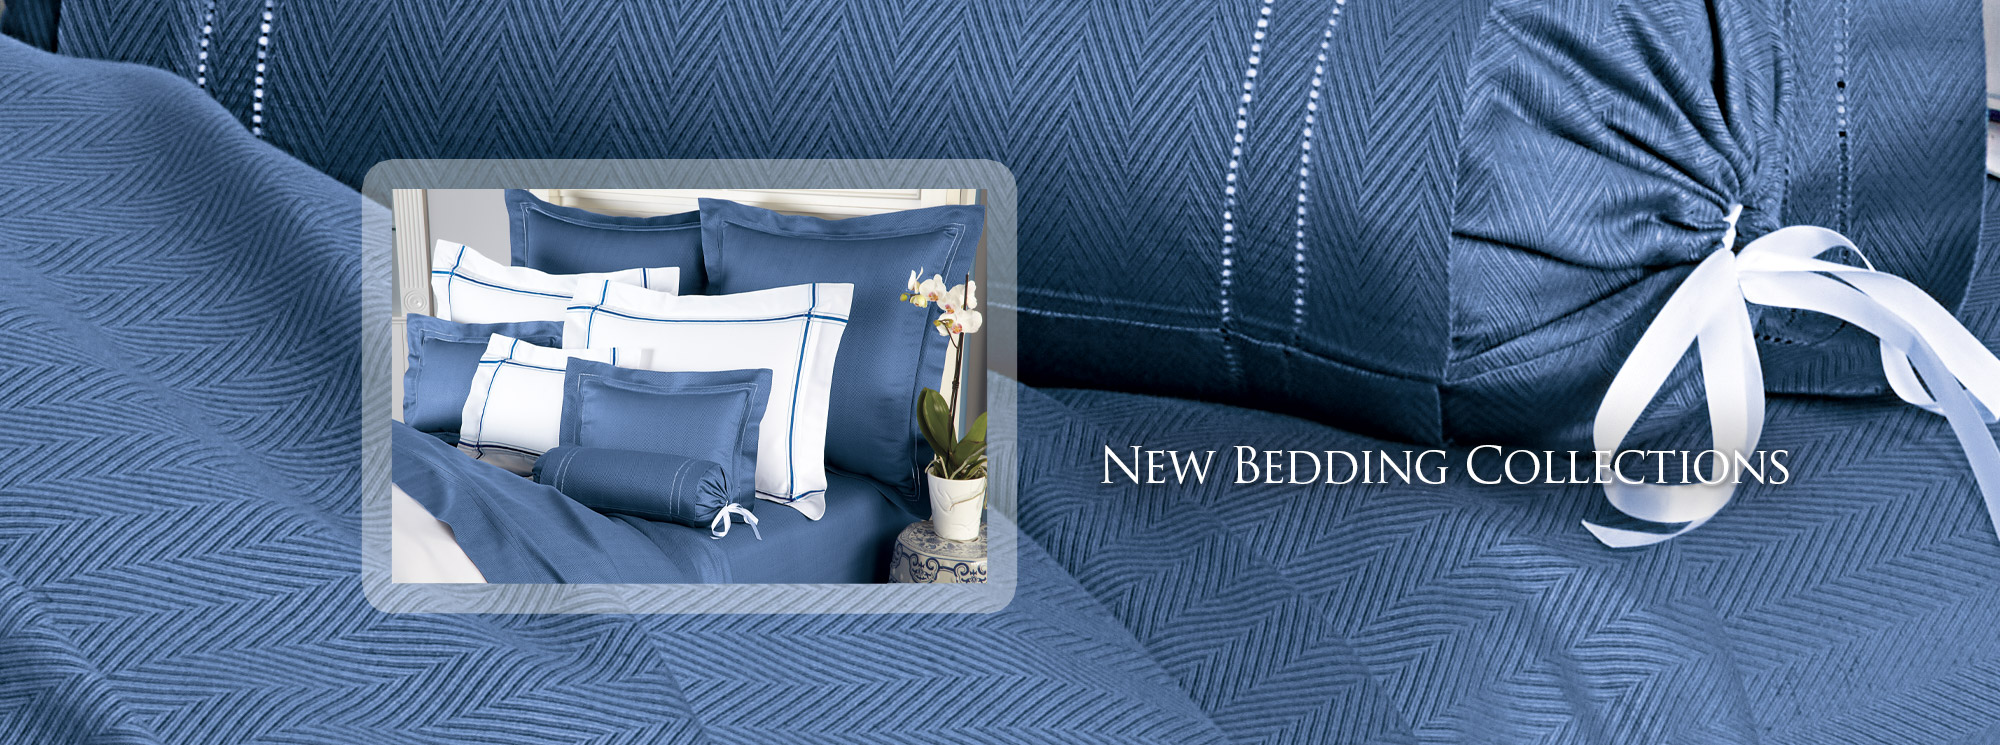 New Bedding Collections